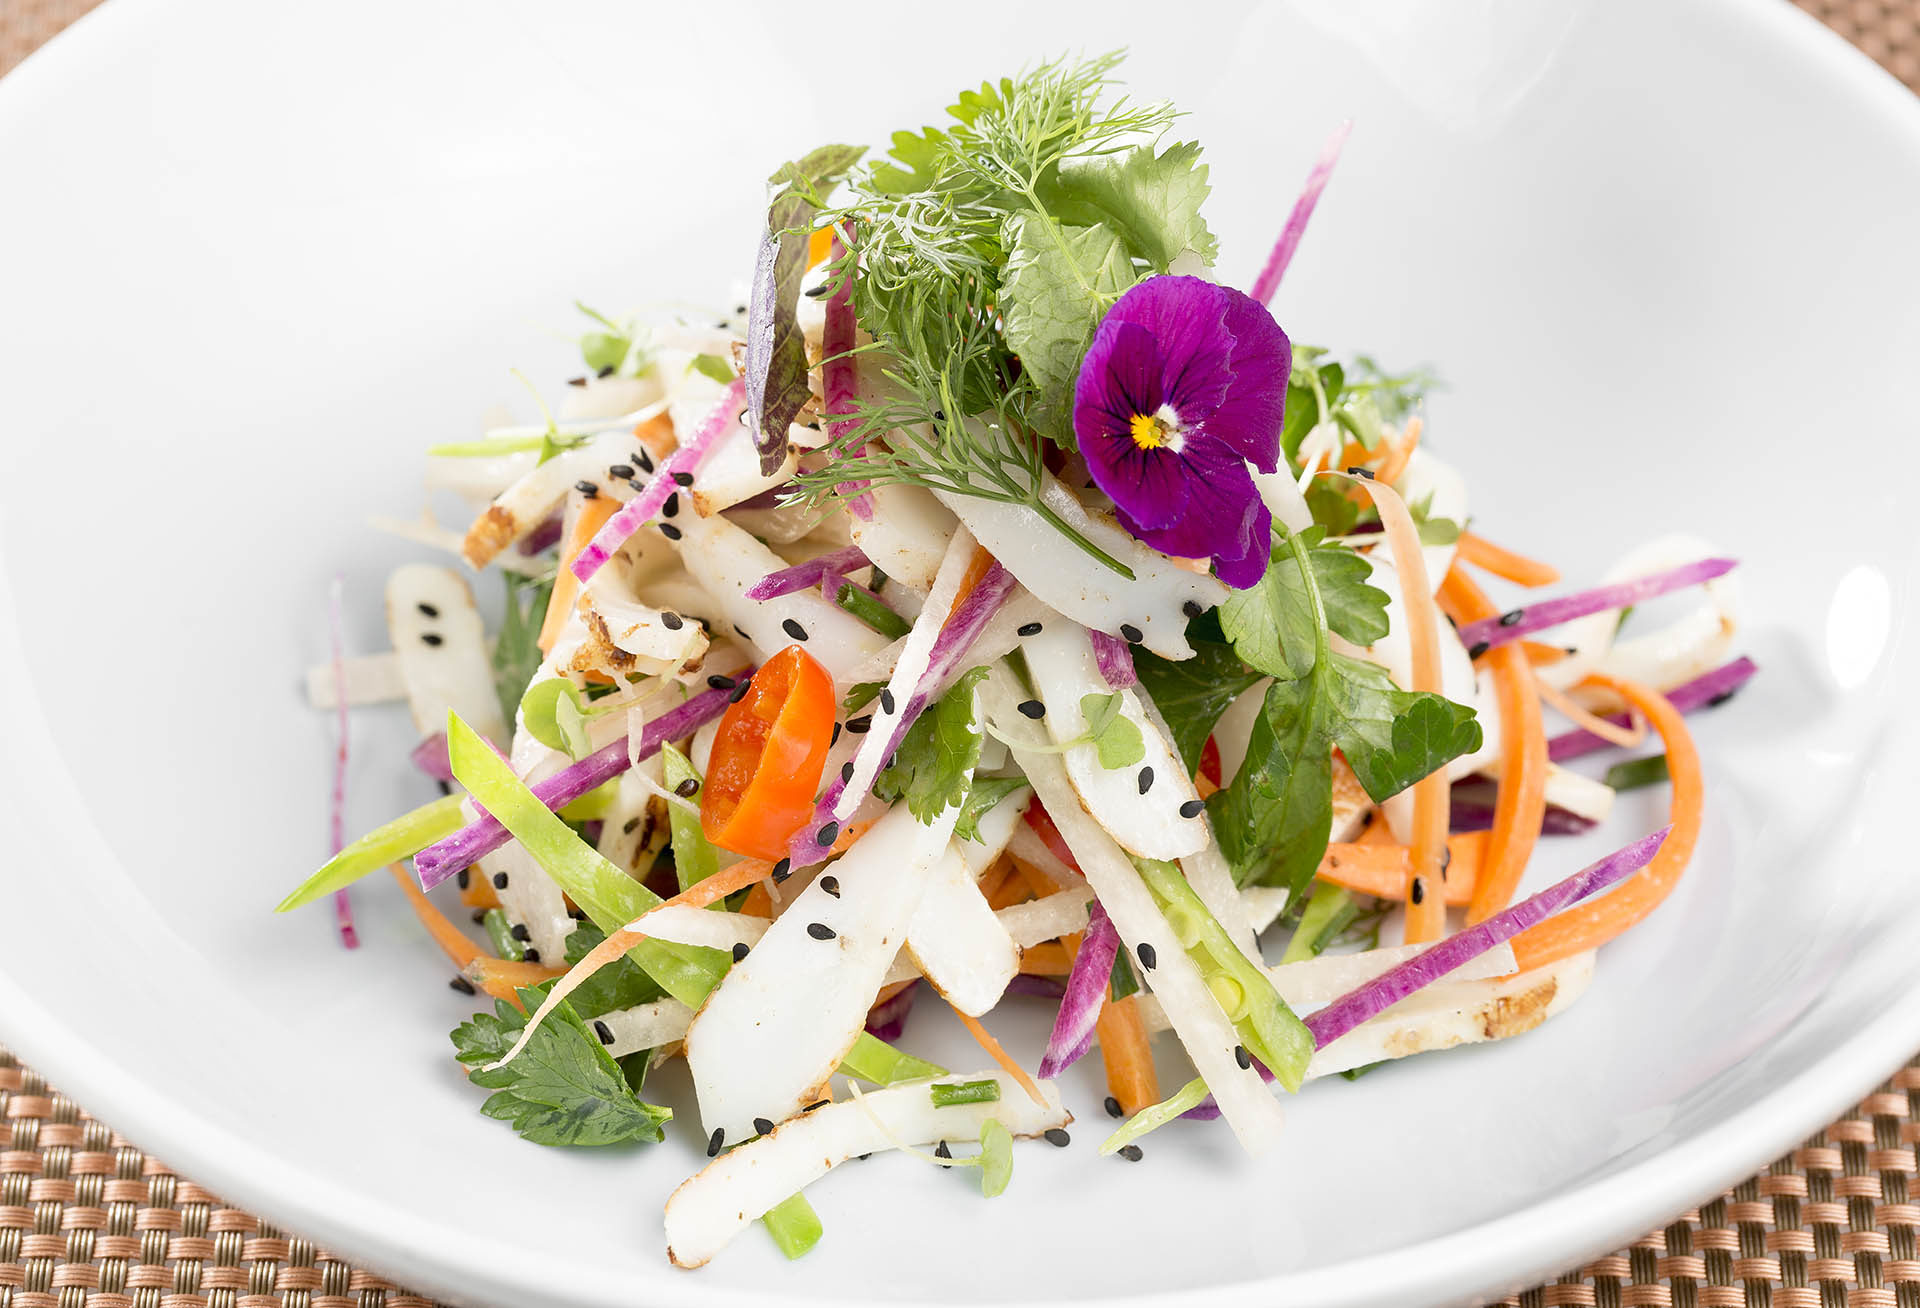 Calamari-Salad_calamari_julienne-vegetables_fine-herbs_yuzu-dressing_006-1920×1308-1171083085